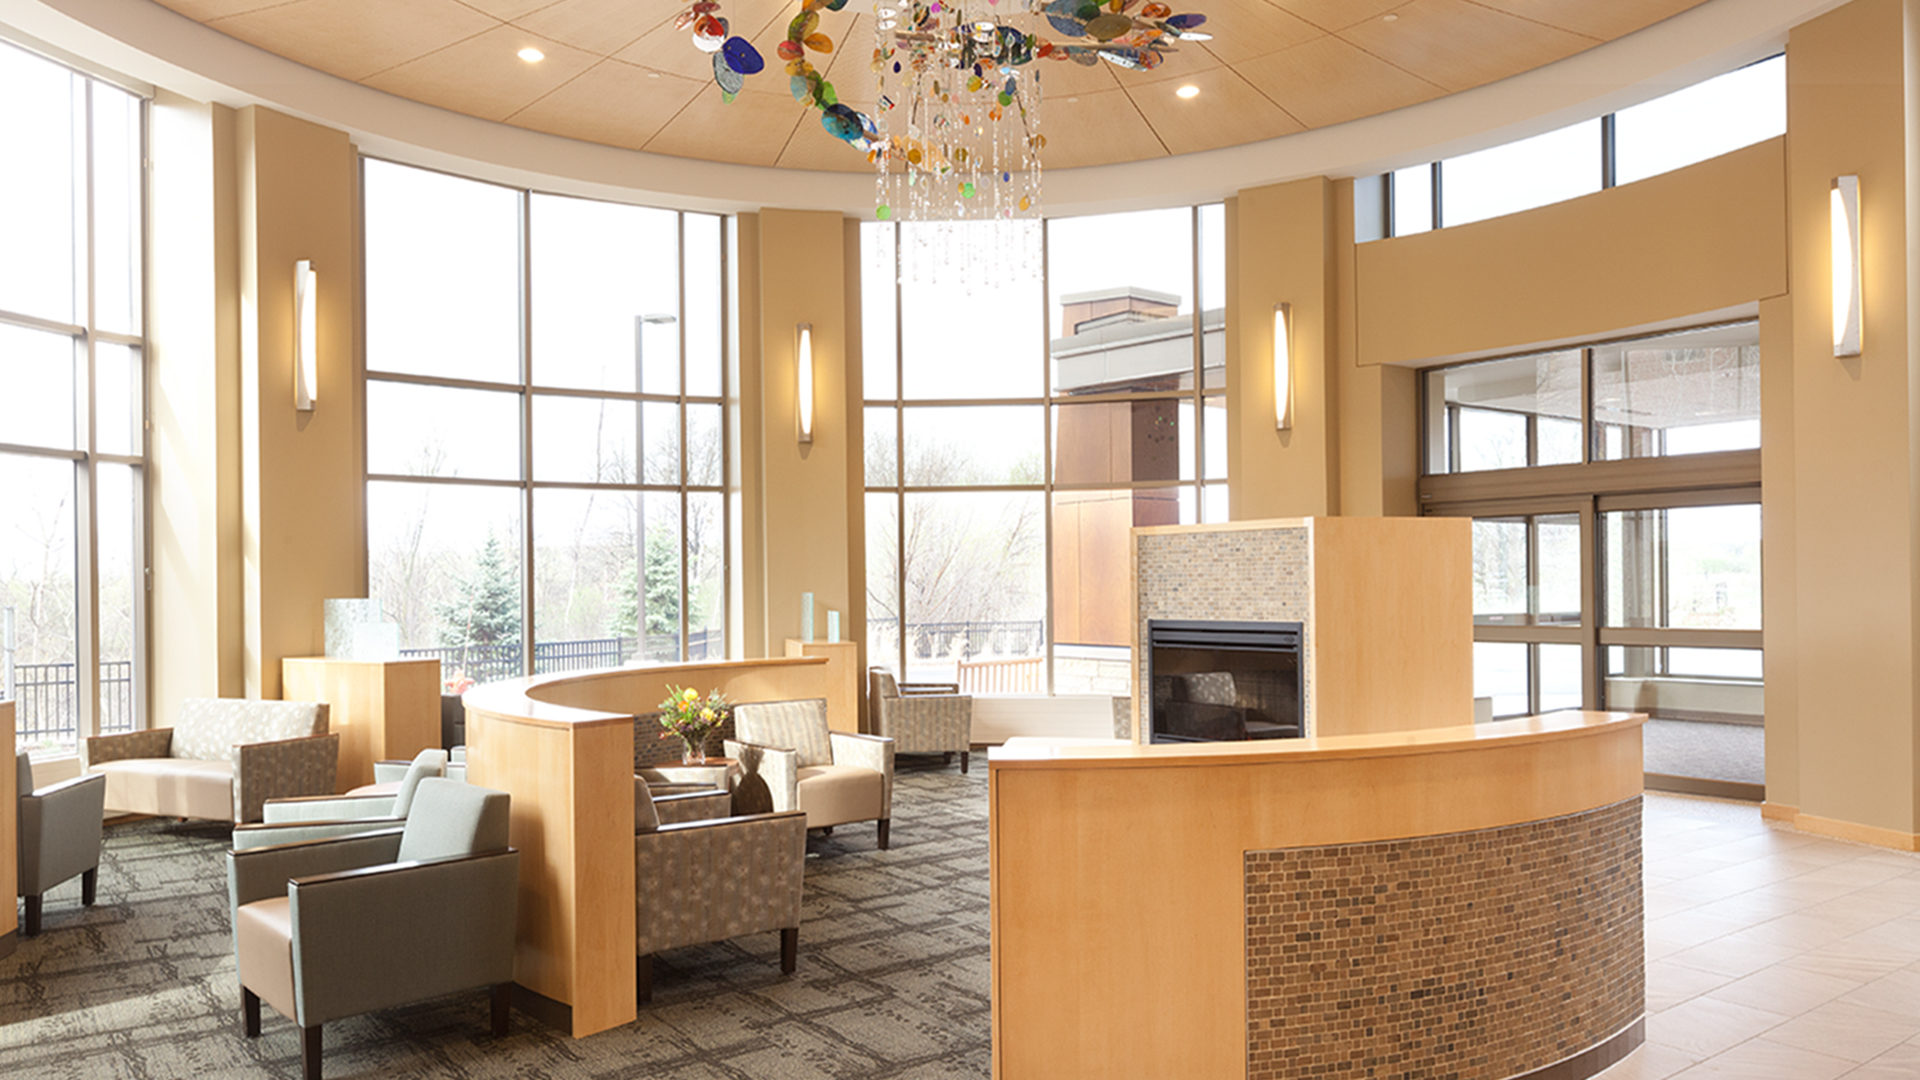 Woodwinds Hospital Cancer Center Woodbury MN Lobby Waiting Area